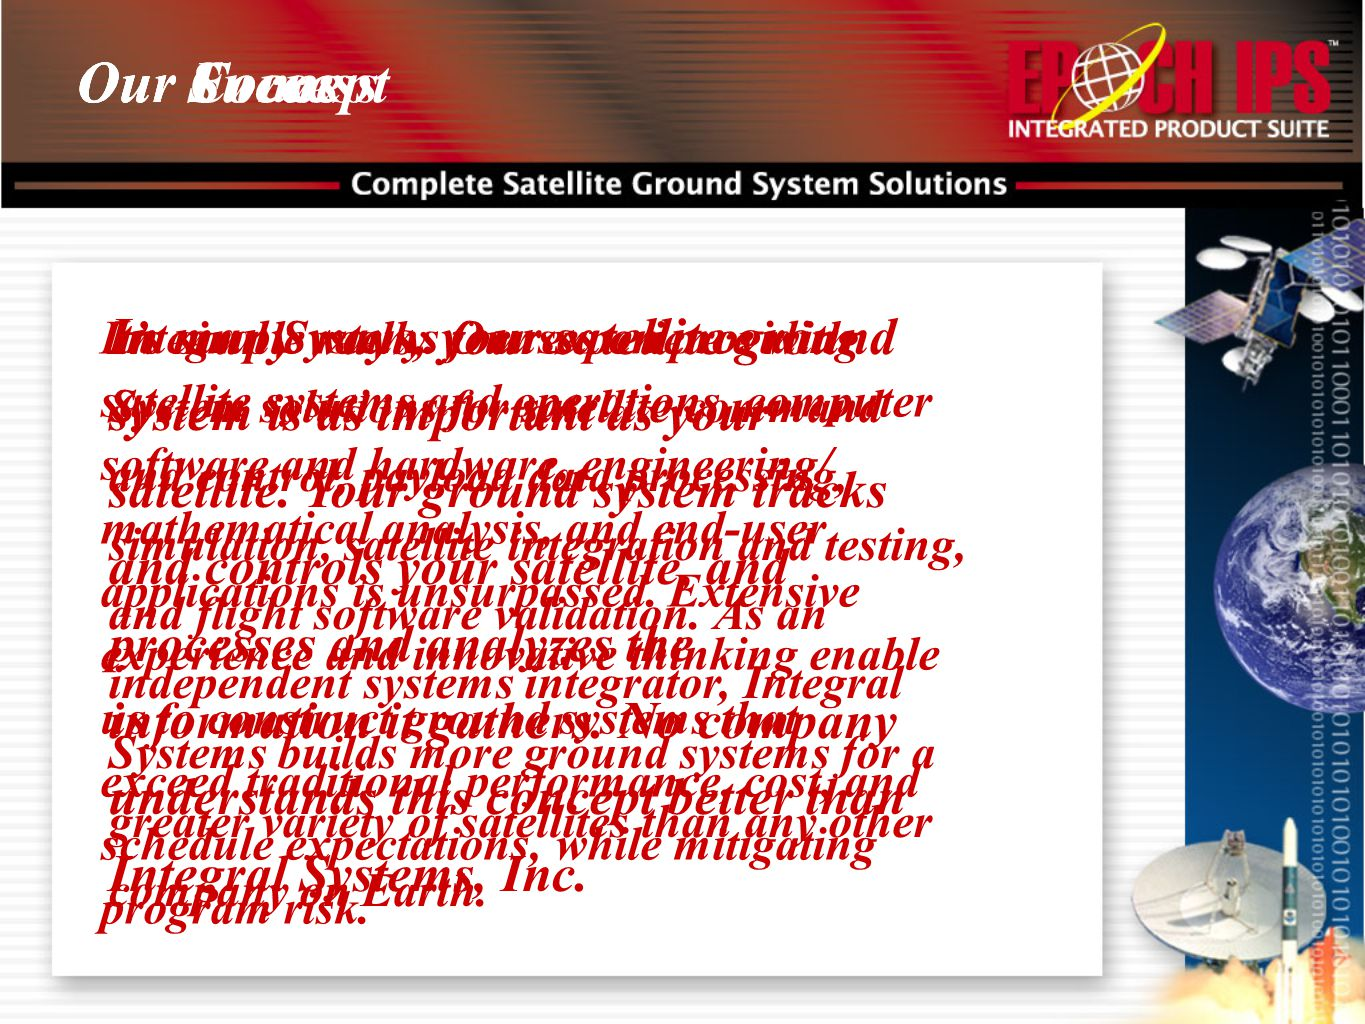 In many ways, your satellite ground system is as important as your satellite. Your ground system tracks and controls your satellite, and processes and